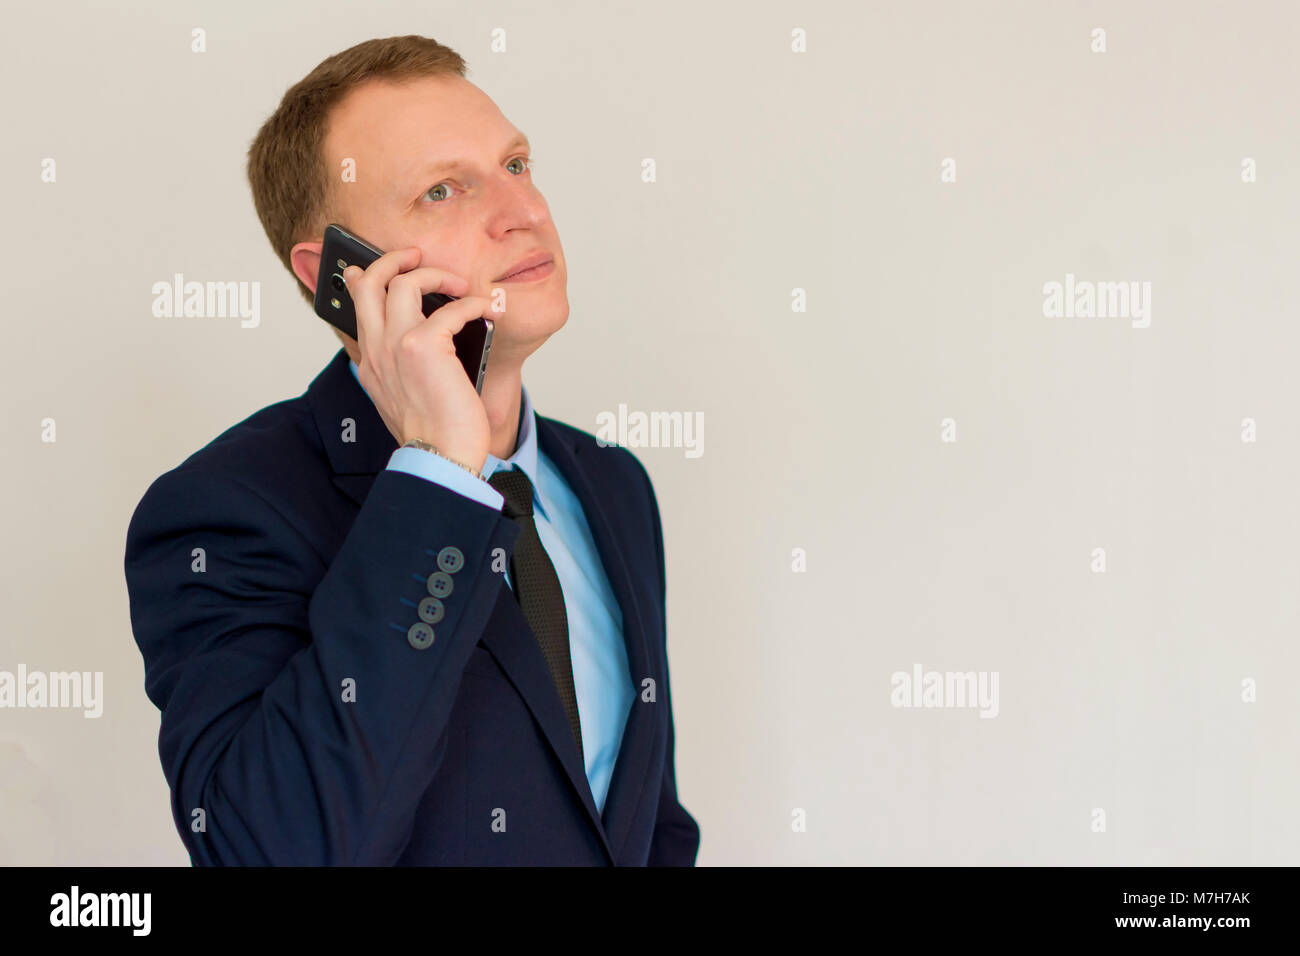 Business man speaking on mobile phone - Stock Image